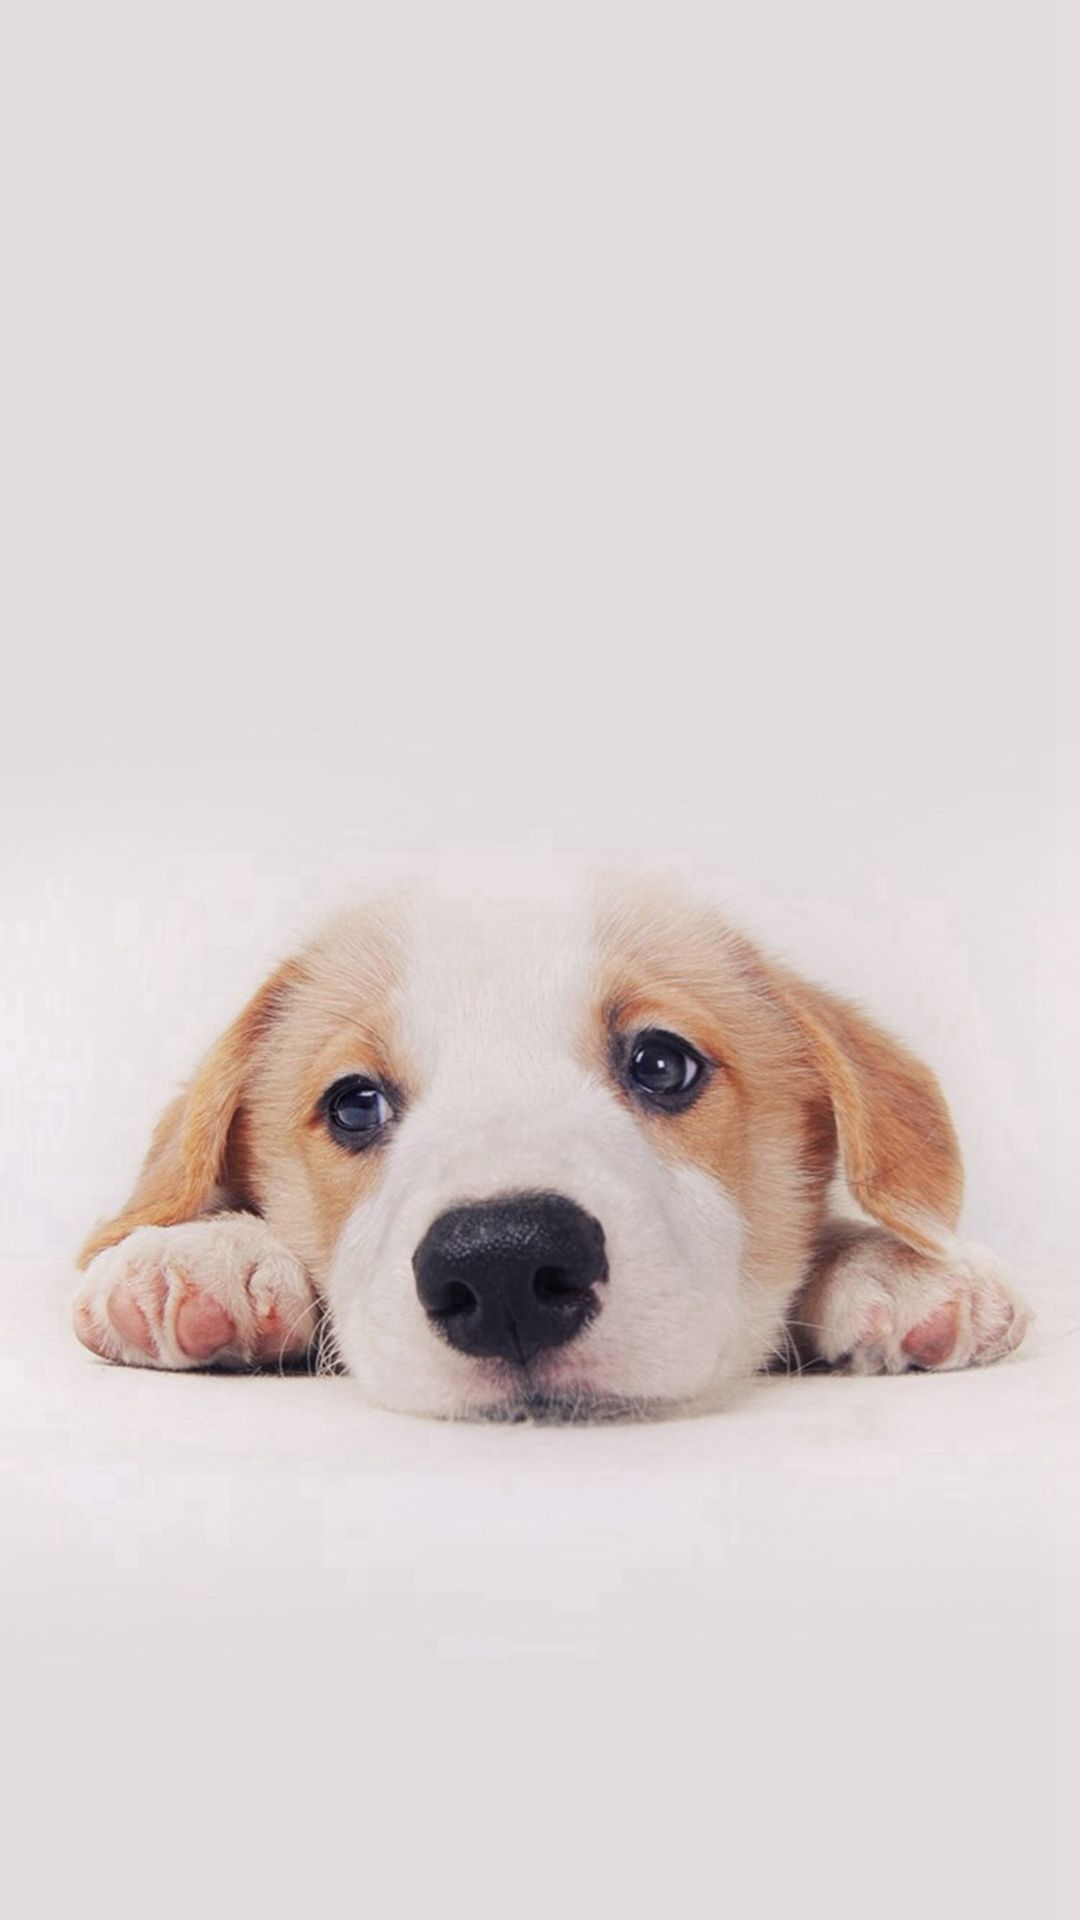 "3840x2160 Cute Puppy Wallpaper High Quality Resolution Just Free Wallpaper ..."">"